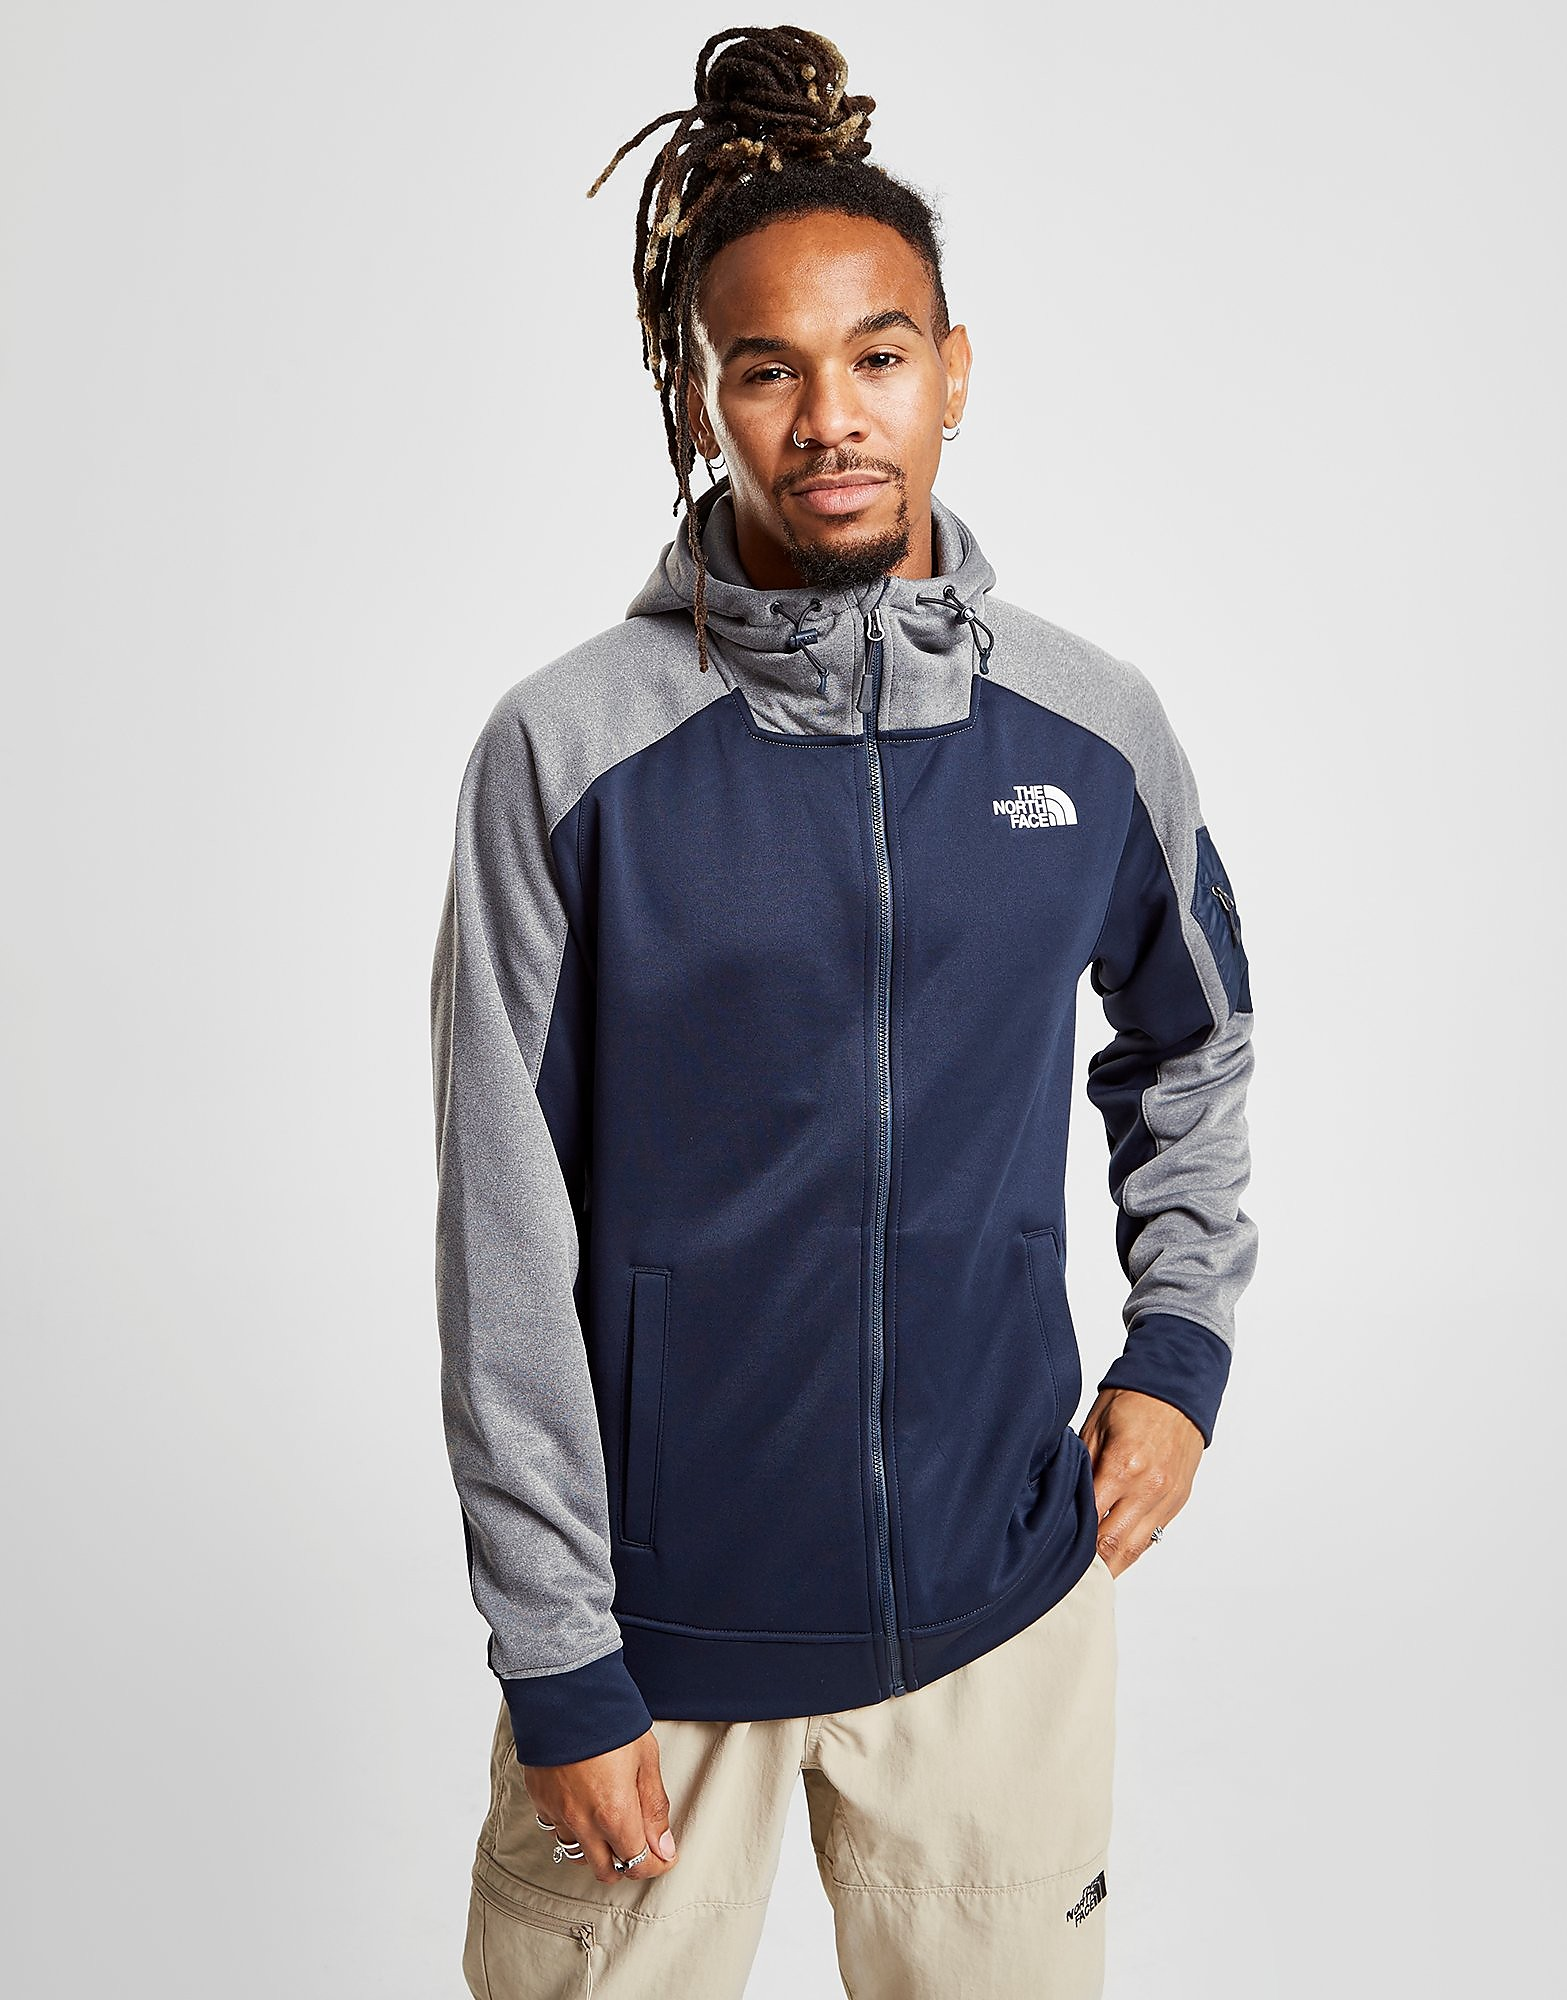 a87400d88589 The North Face Mittellegi Full Zip Hoodie - Only at JD - Bleu, Bleu